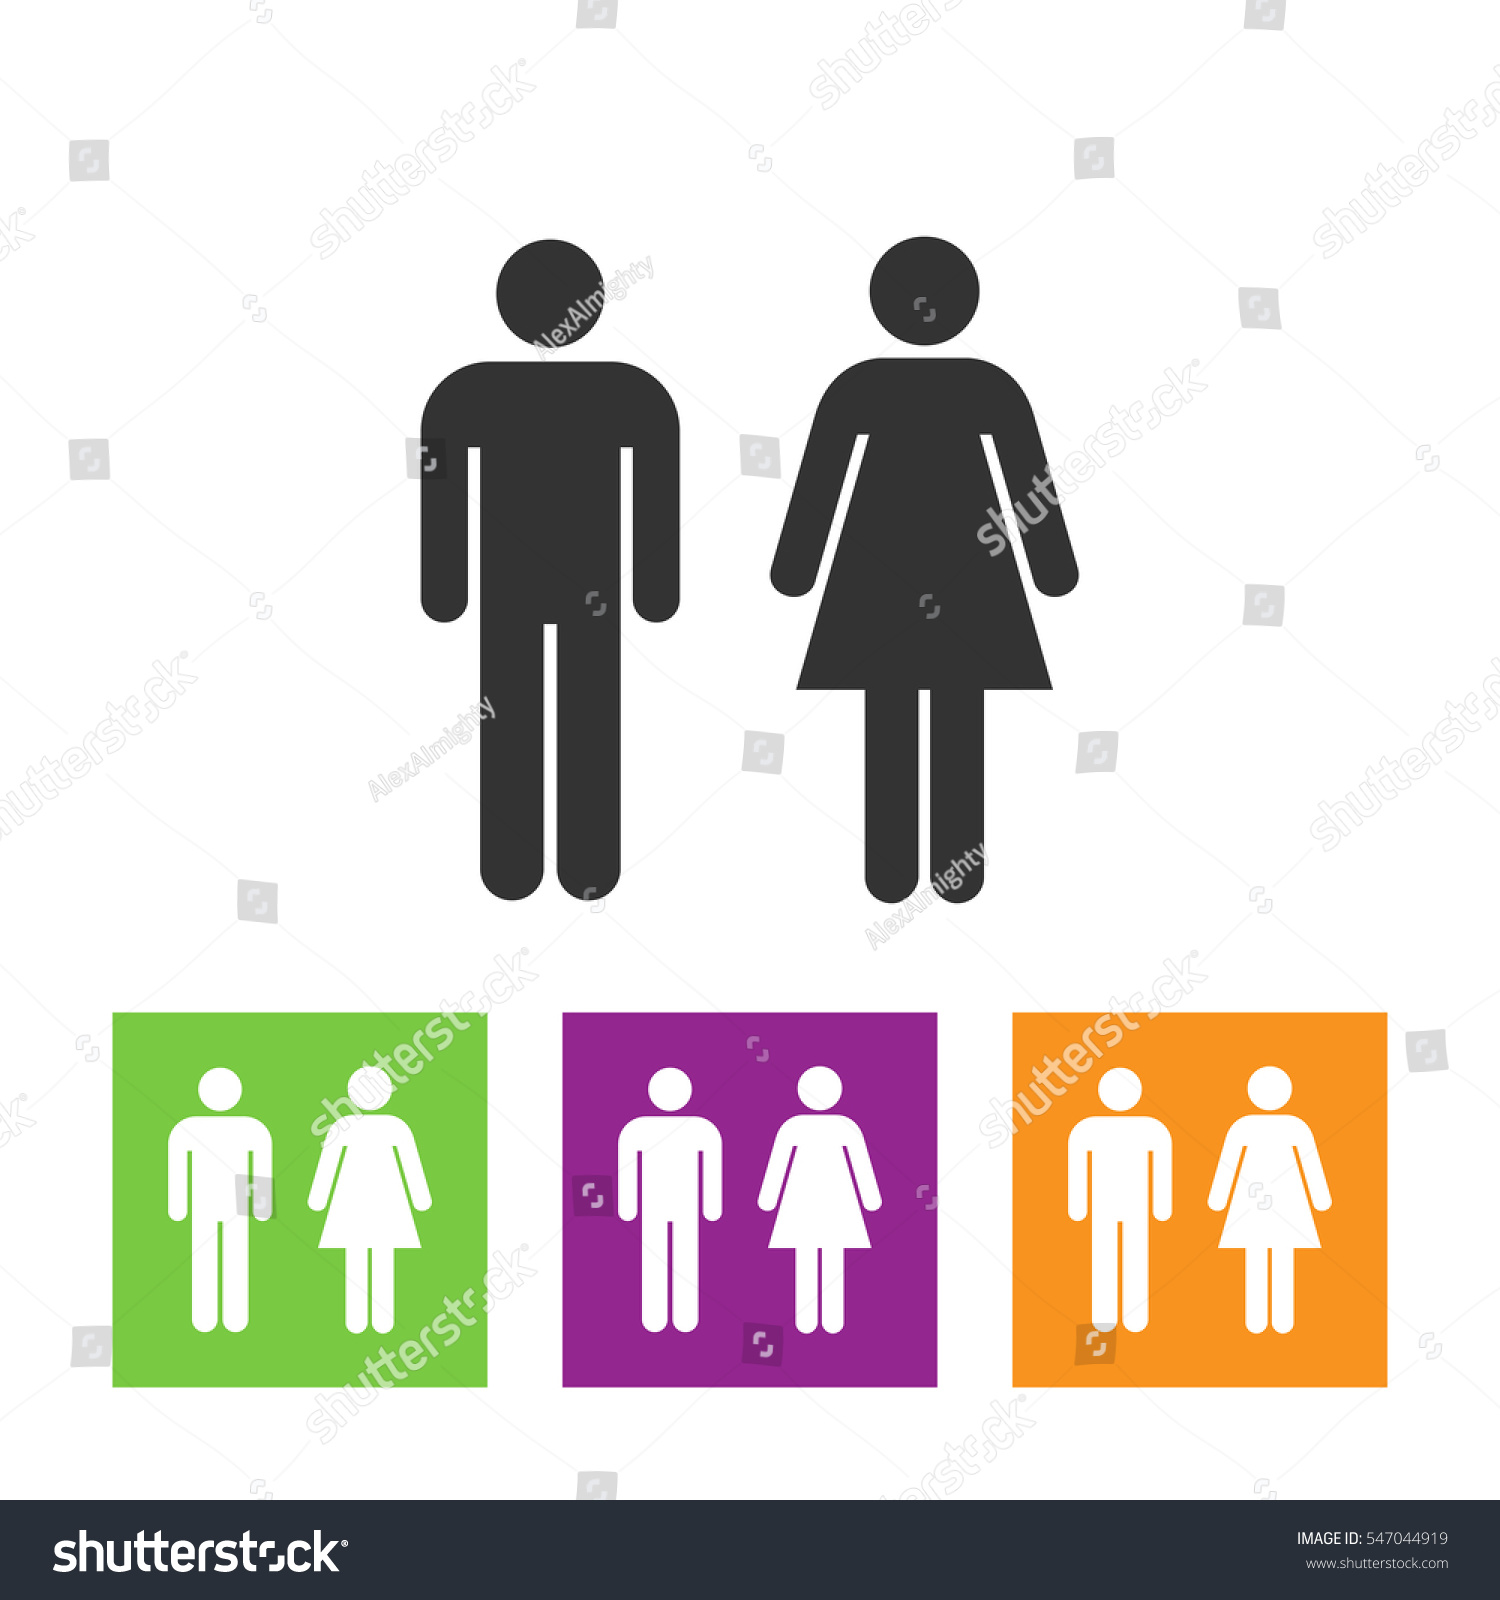 Vector man and woman icons  toilet sign  restroom icon  minimal style   pictogram. Vector Man Woman Icons Toilet Sign Stock Vector 547044919